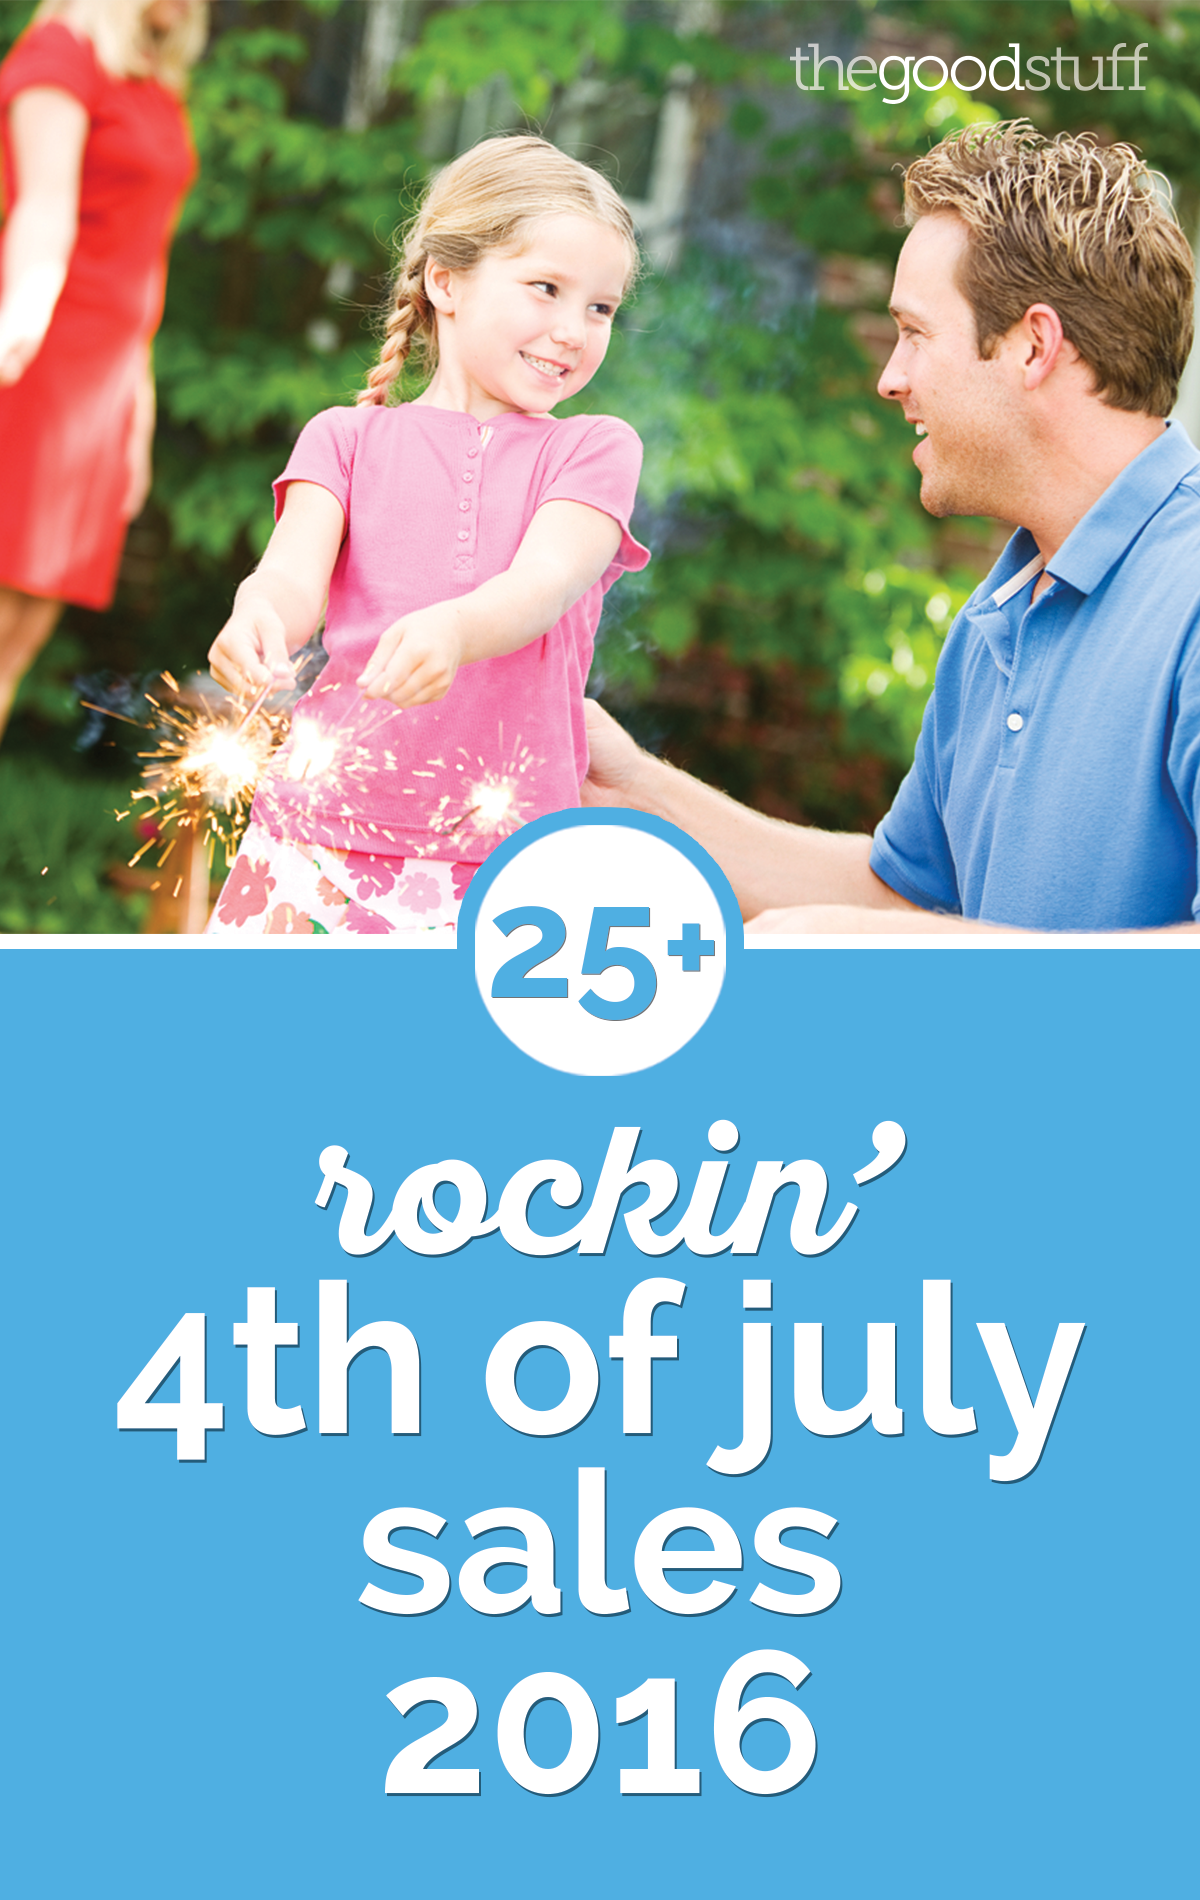 25+ Rockin' 4th of July Sales 2016 | thegoodstuff